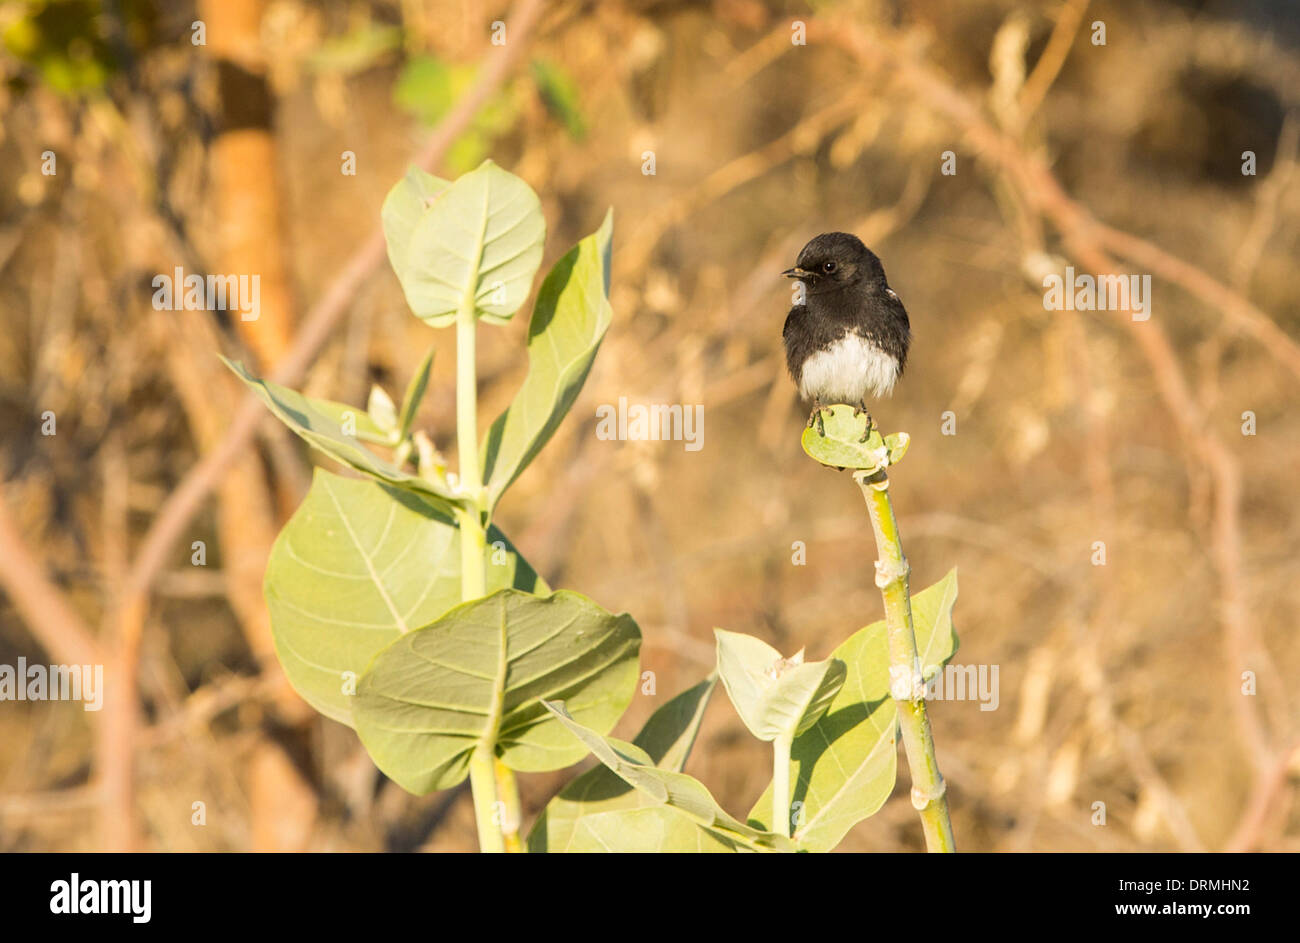 A Pied Bush Chat (Saxicola caprata) perched in the countrside in Rajasthan, India. - Stock Image